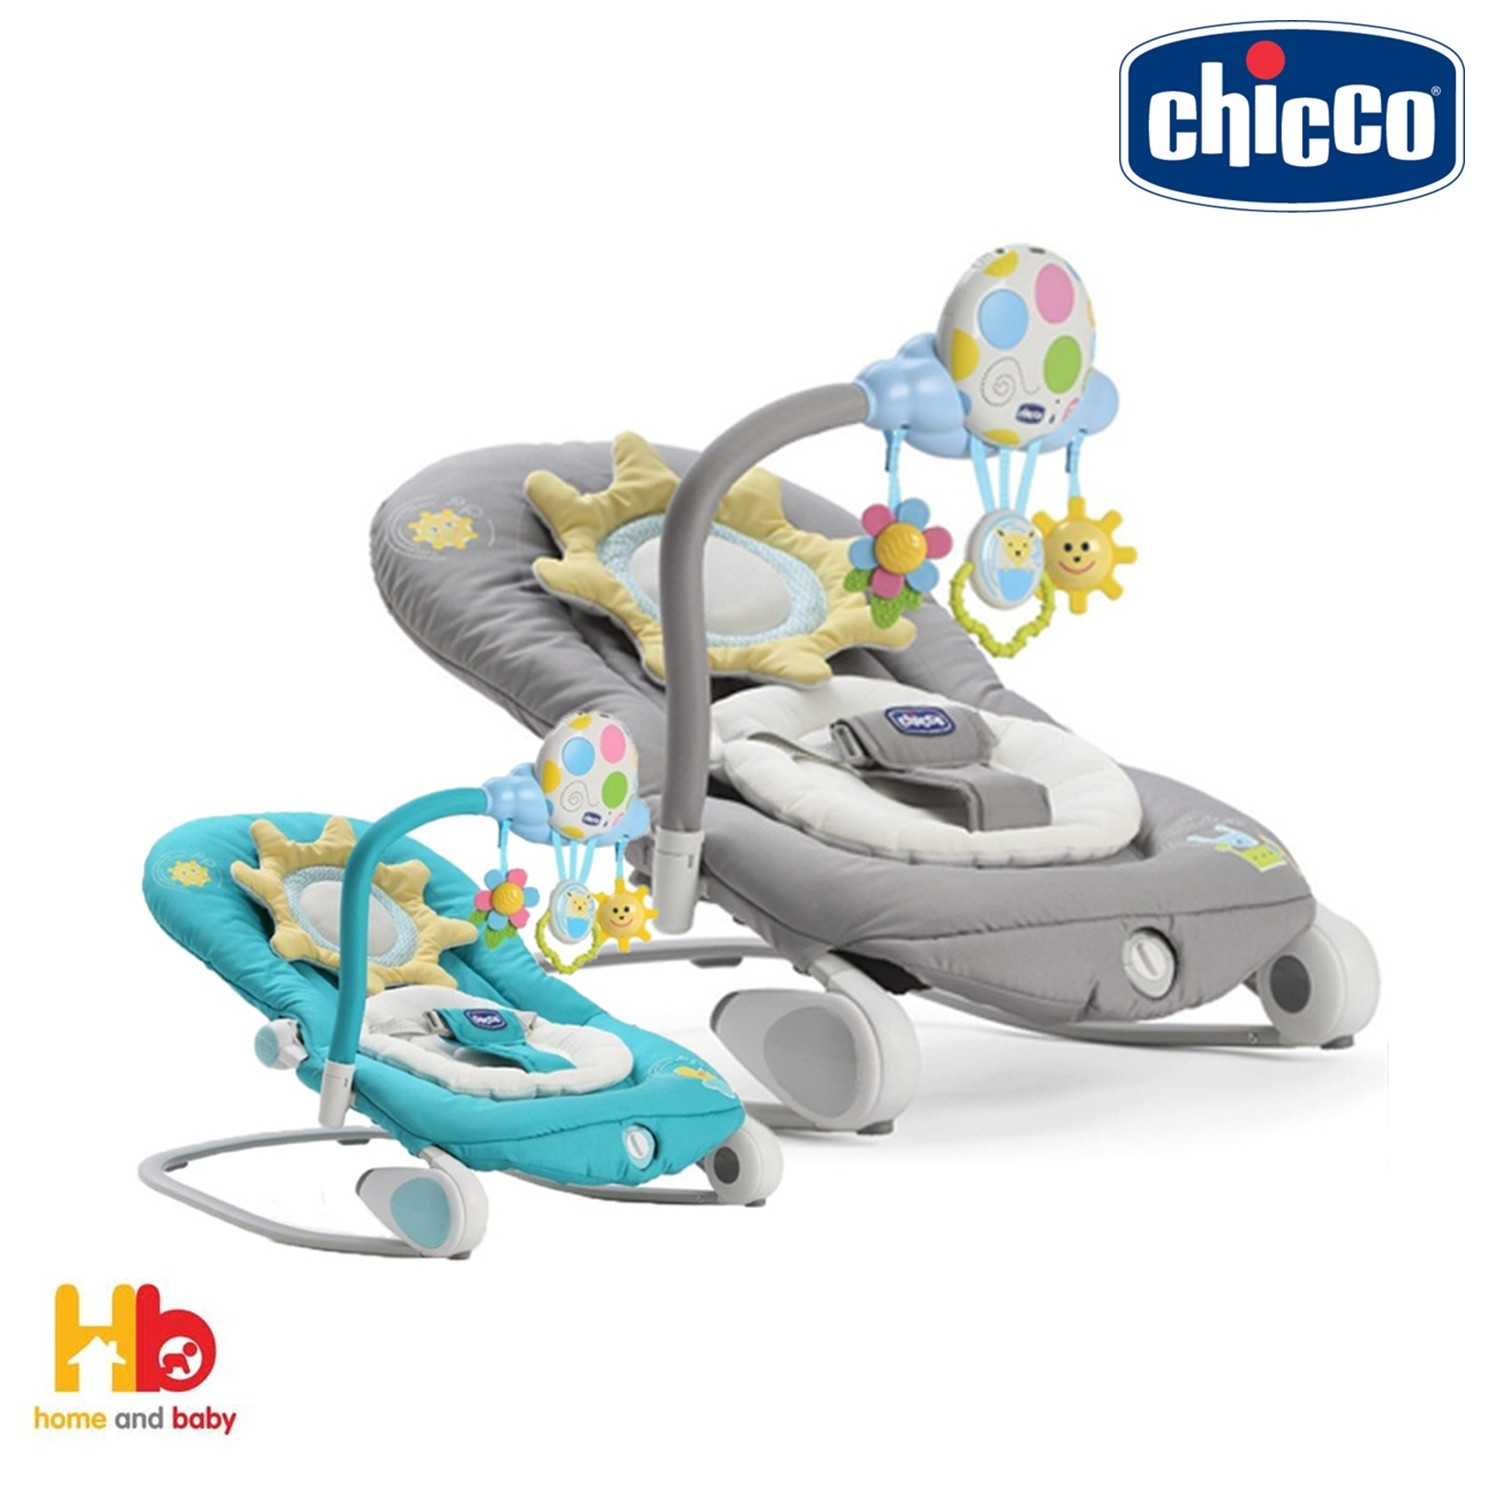 97e059a889d3 Chicco Balloon Baby Bouncer - Dark Grey   Turquoise - Baby